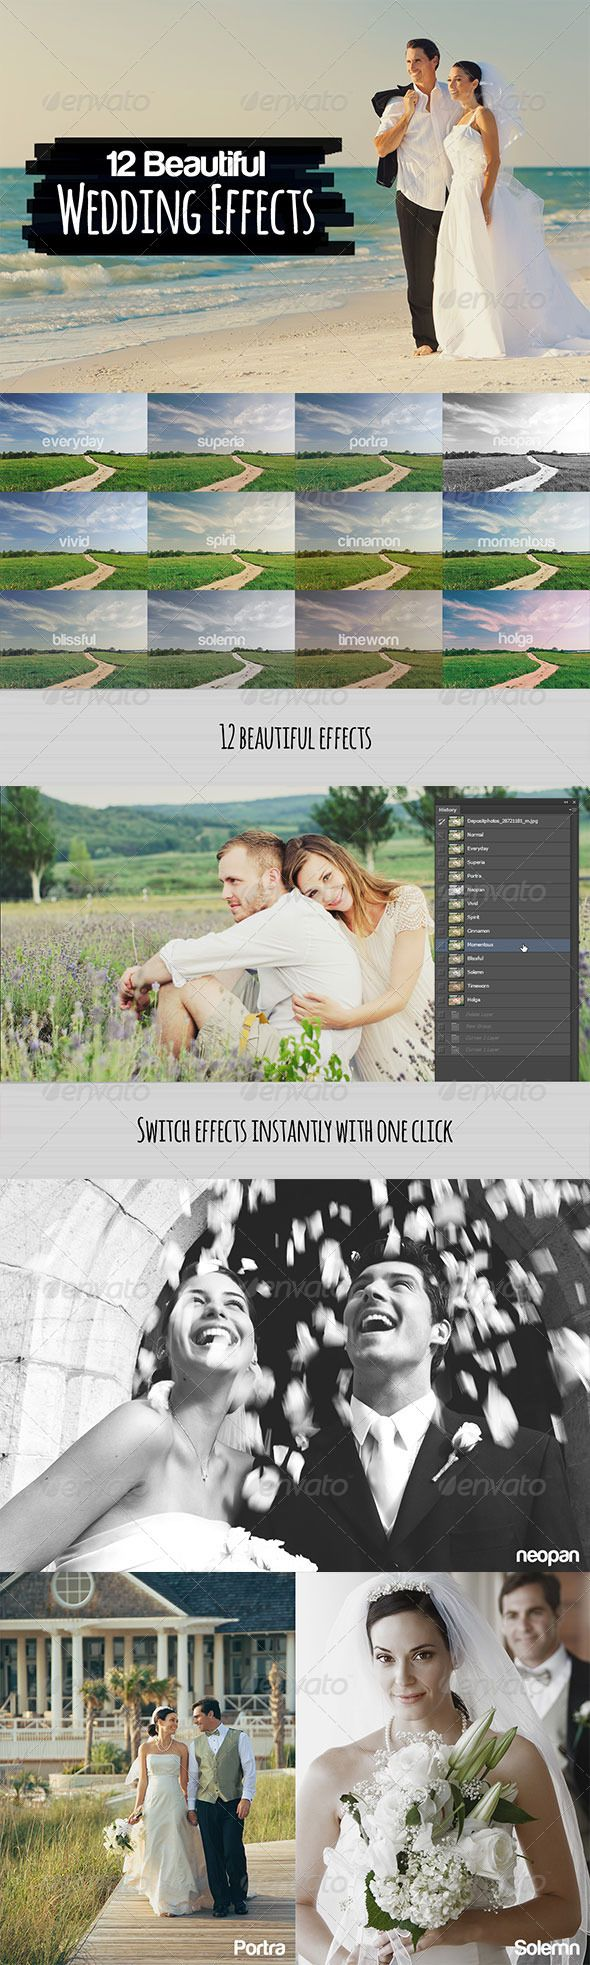 12 Beautiful Wedding Effects - Photo Effects Actions